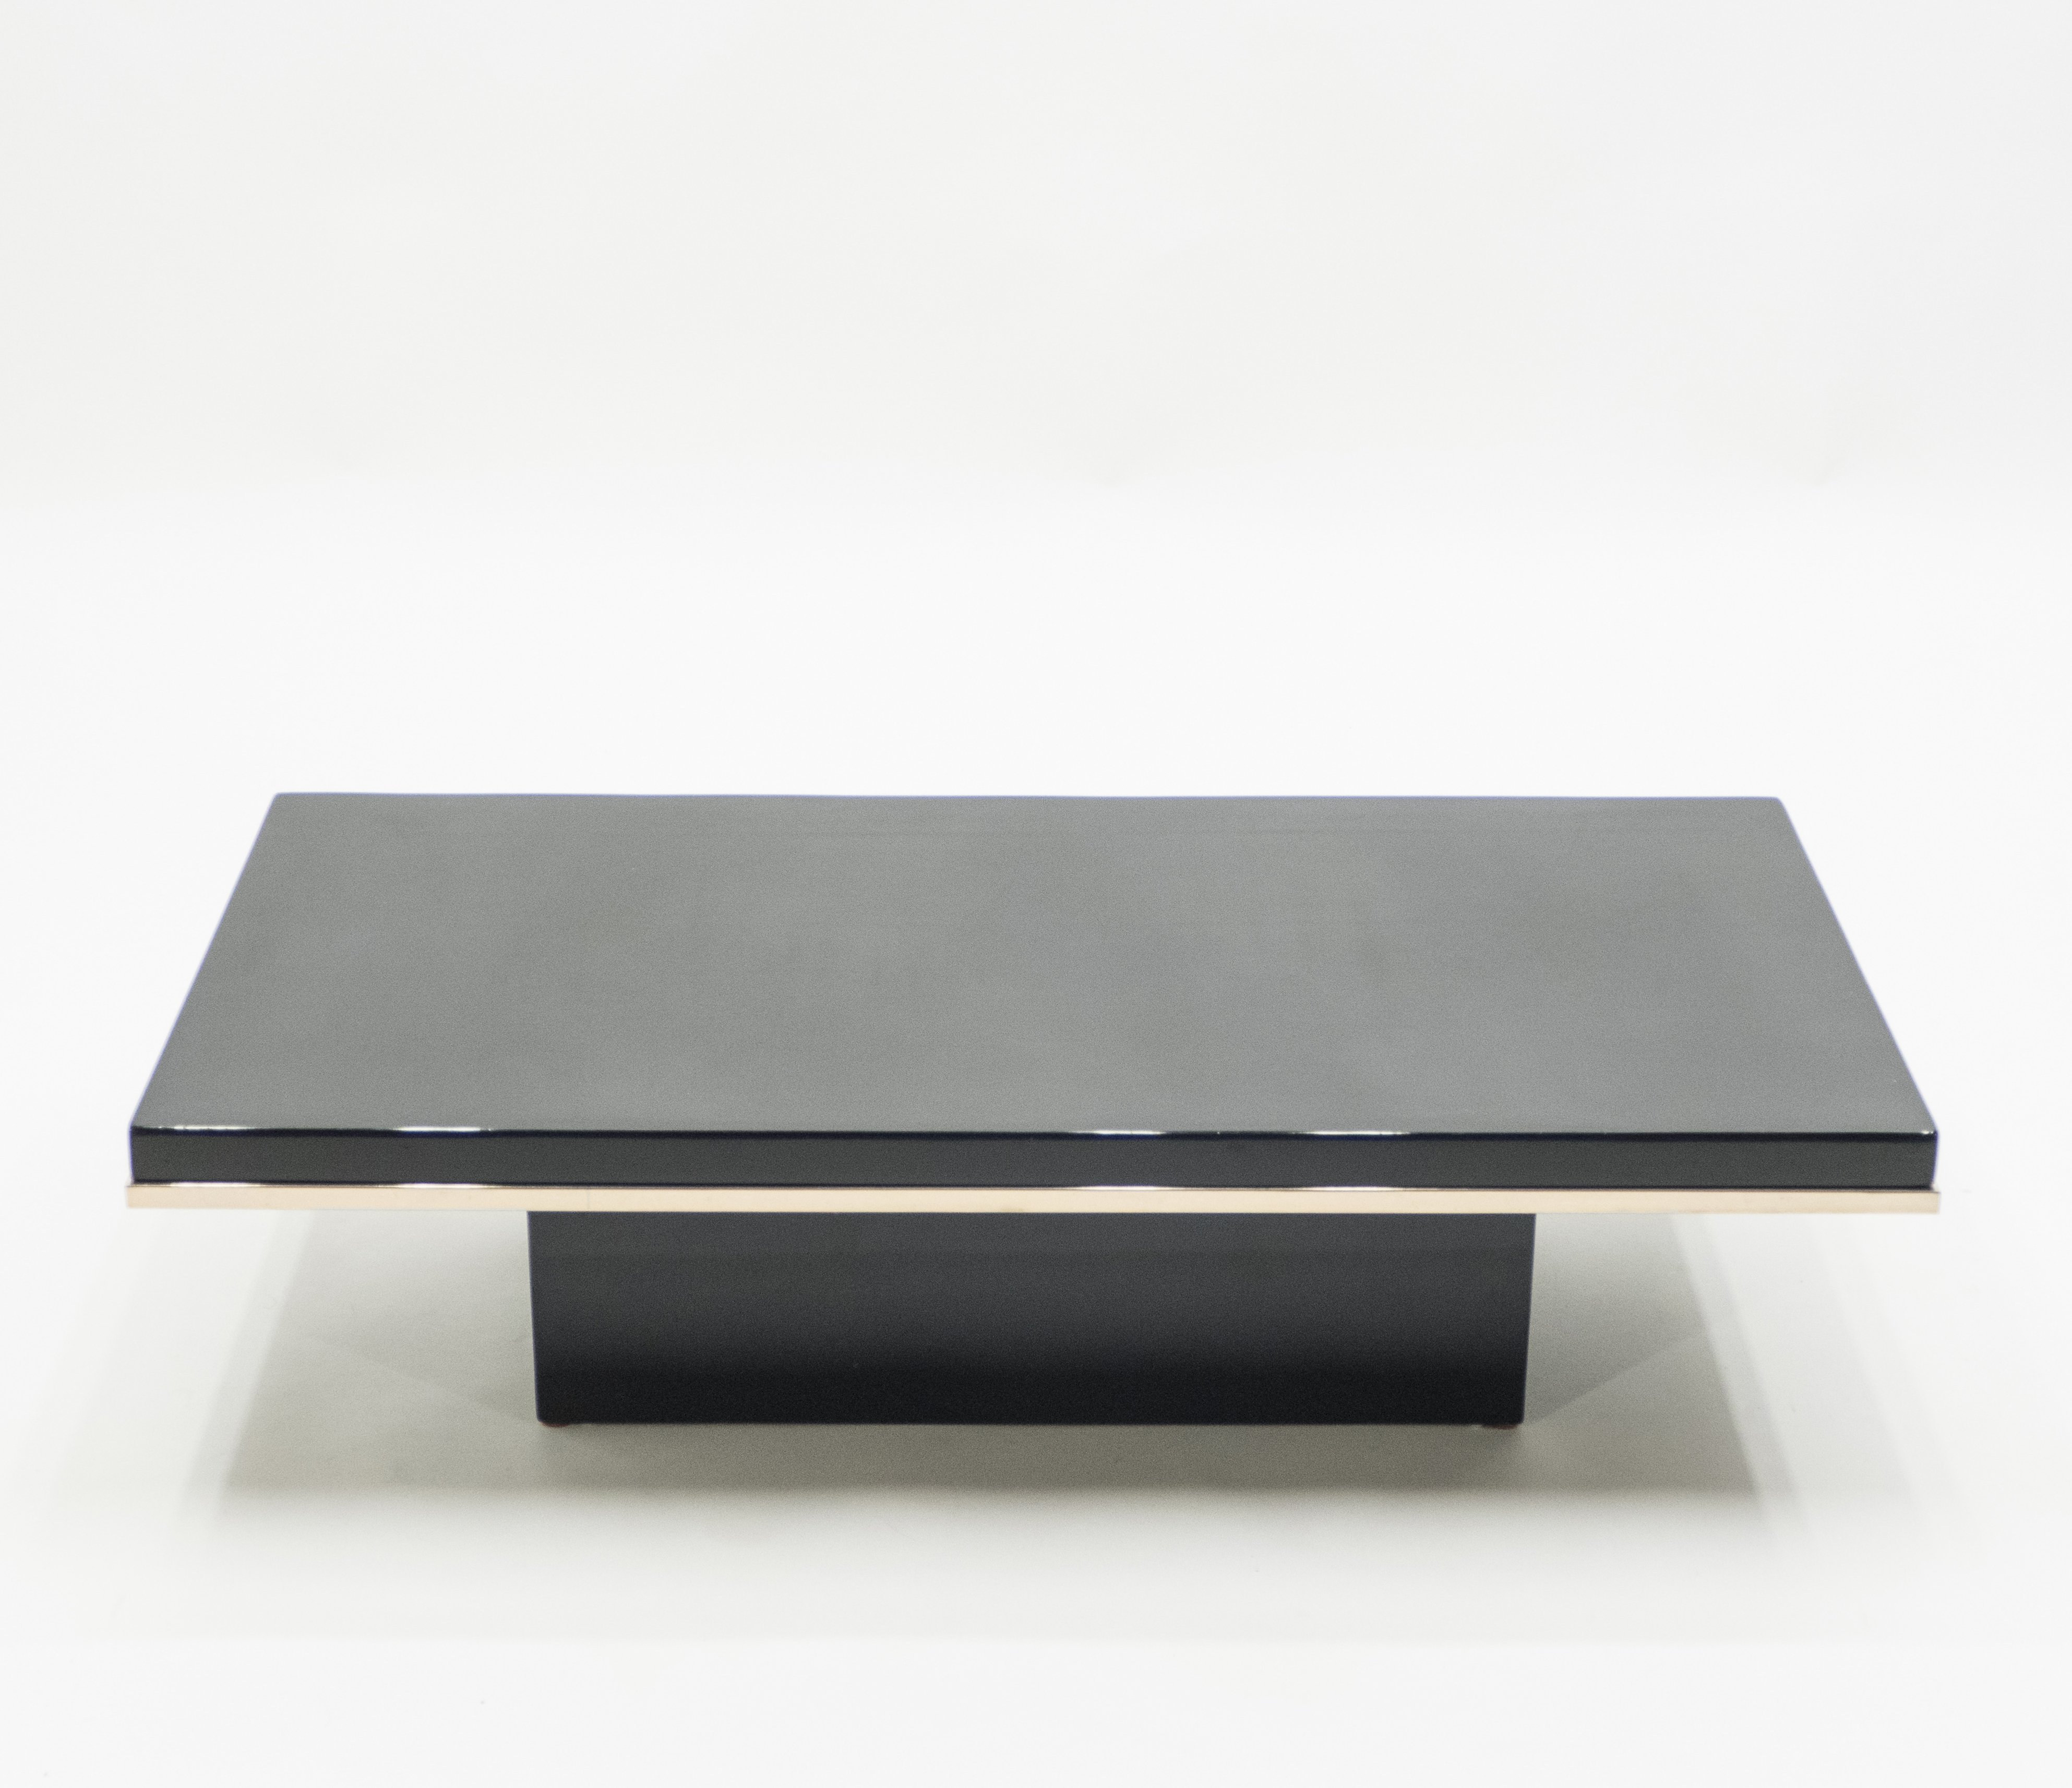 - J.C. Mahey Black Lacquer & Brass Coffee Table, 1970s #129352